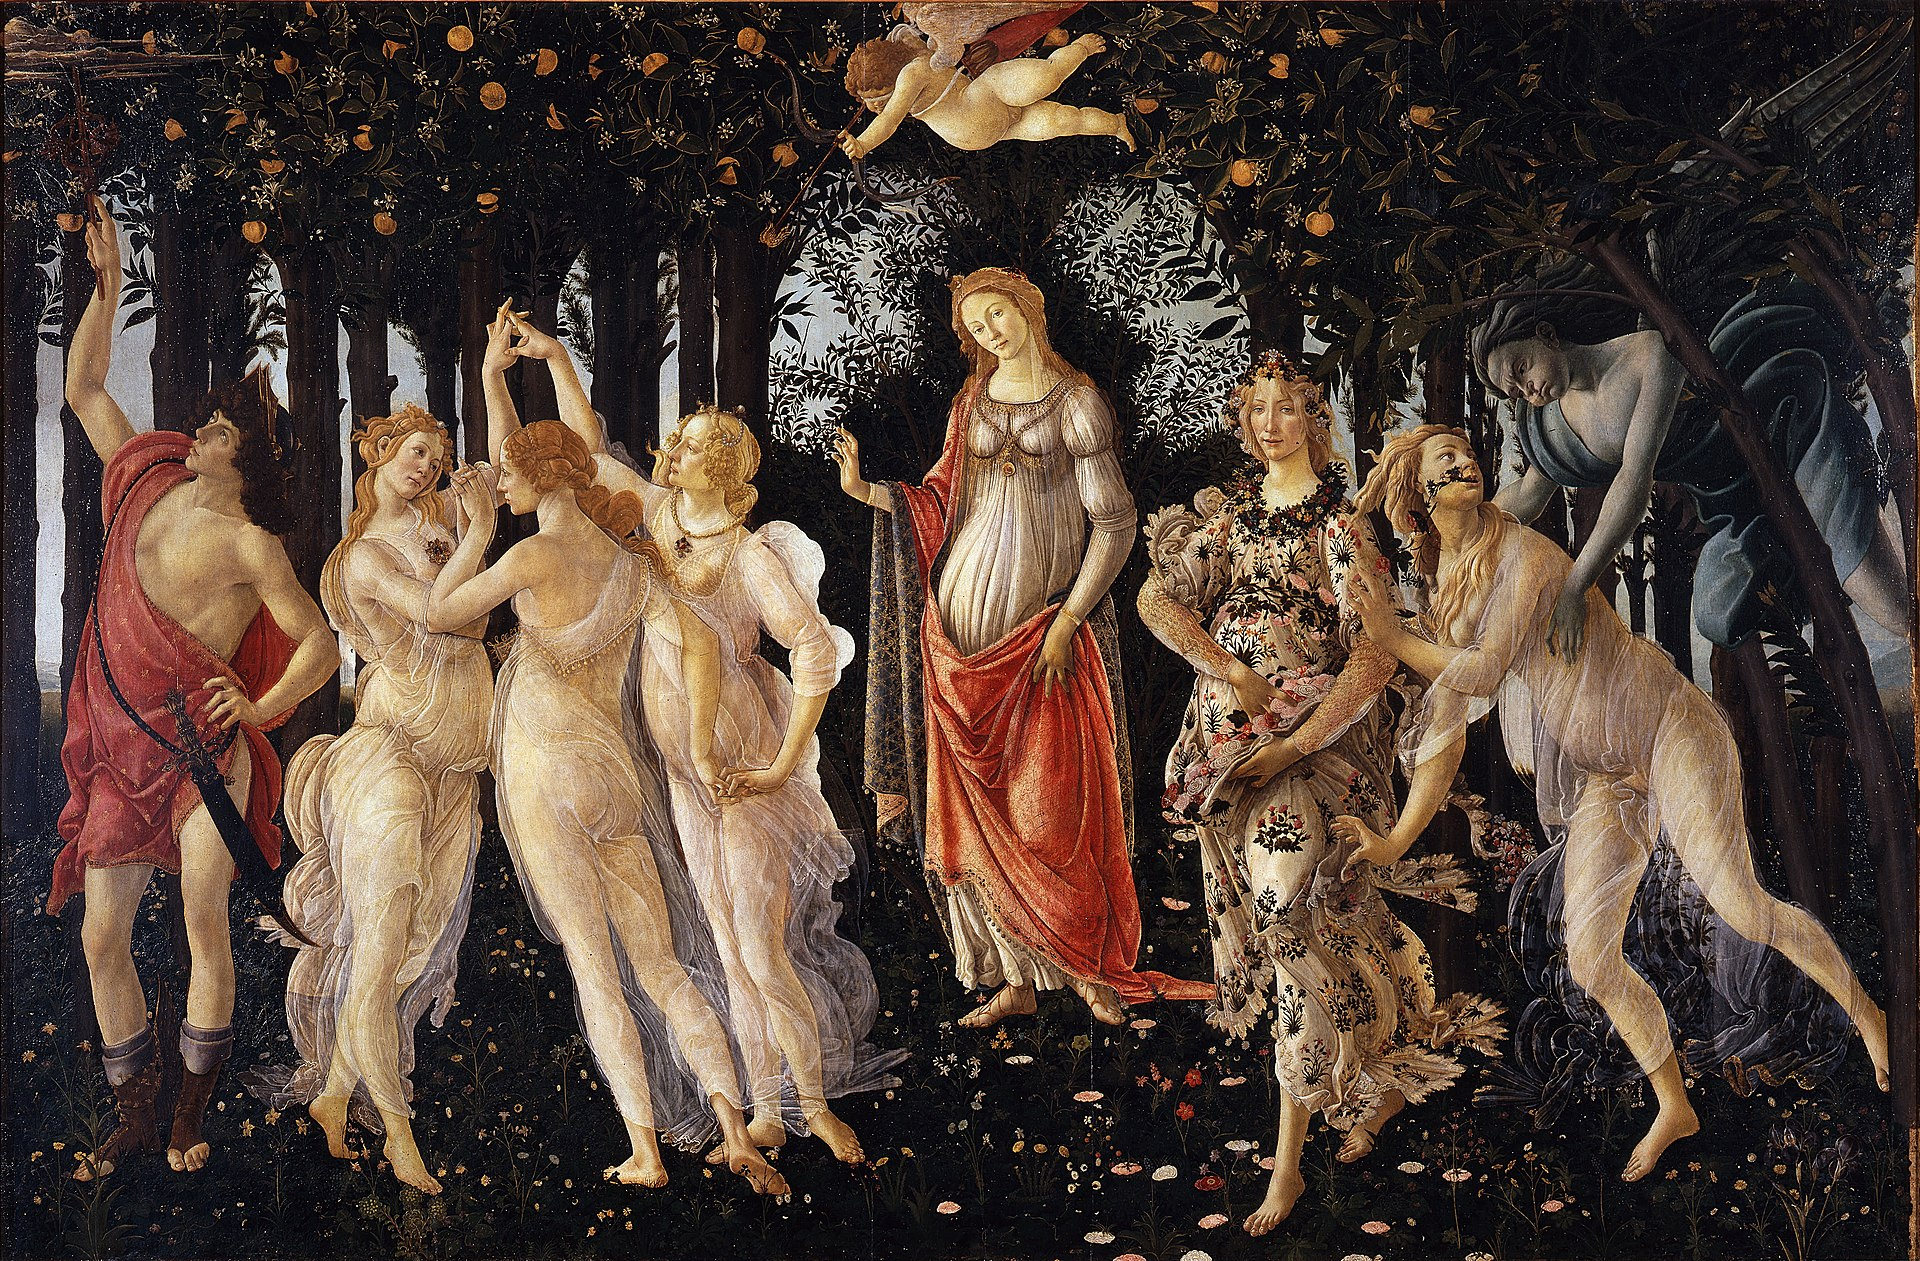 Botticelli art history